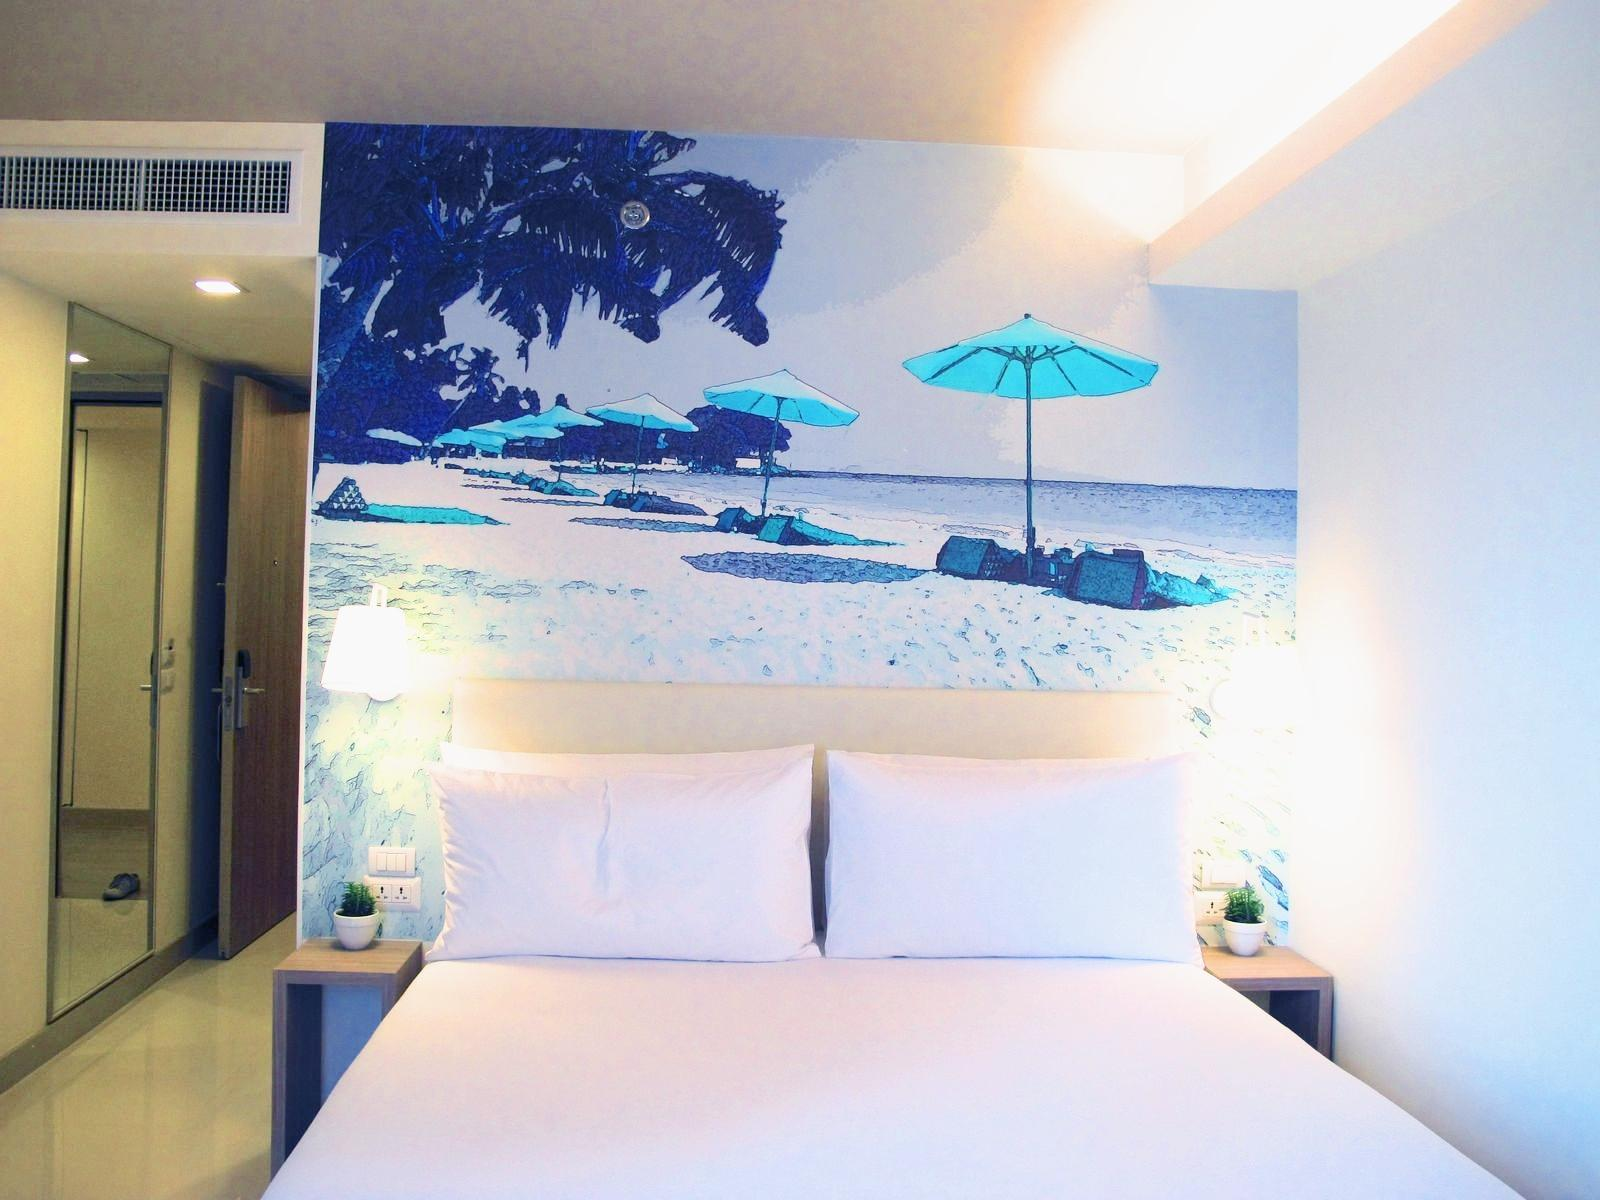 Premier Inn Pattaya4